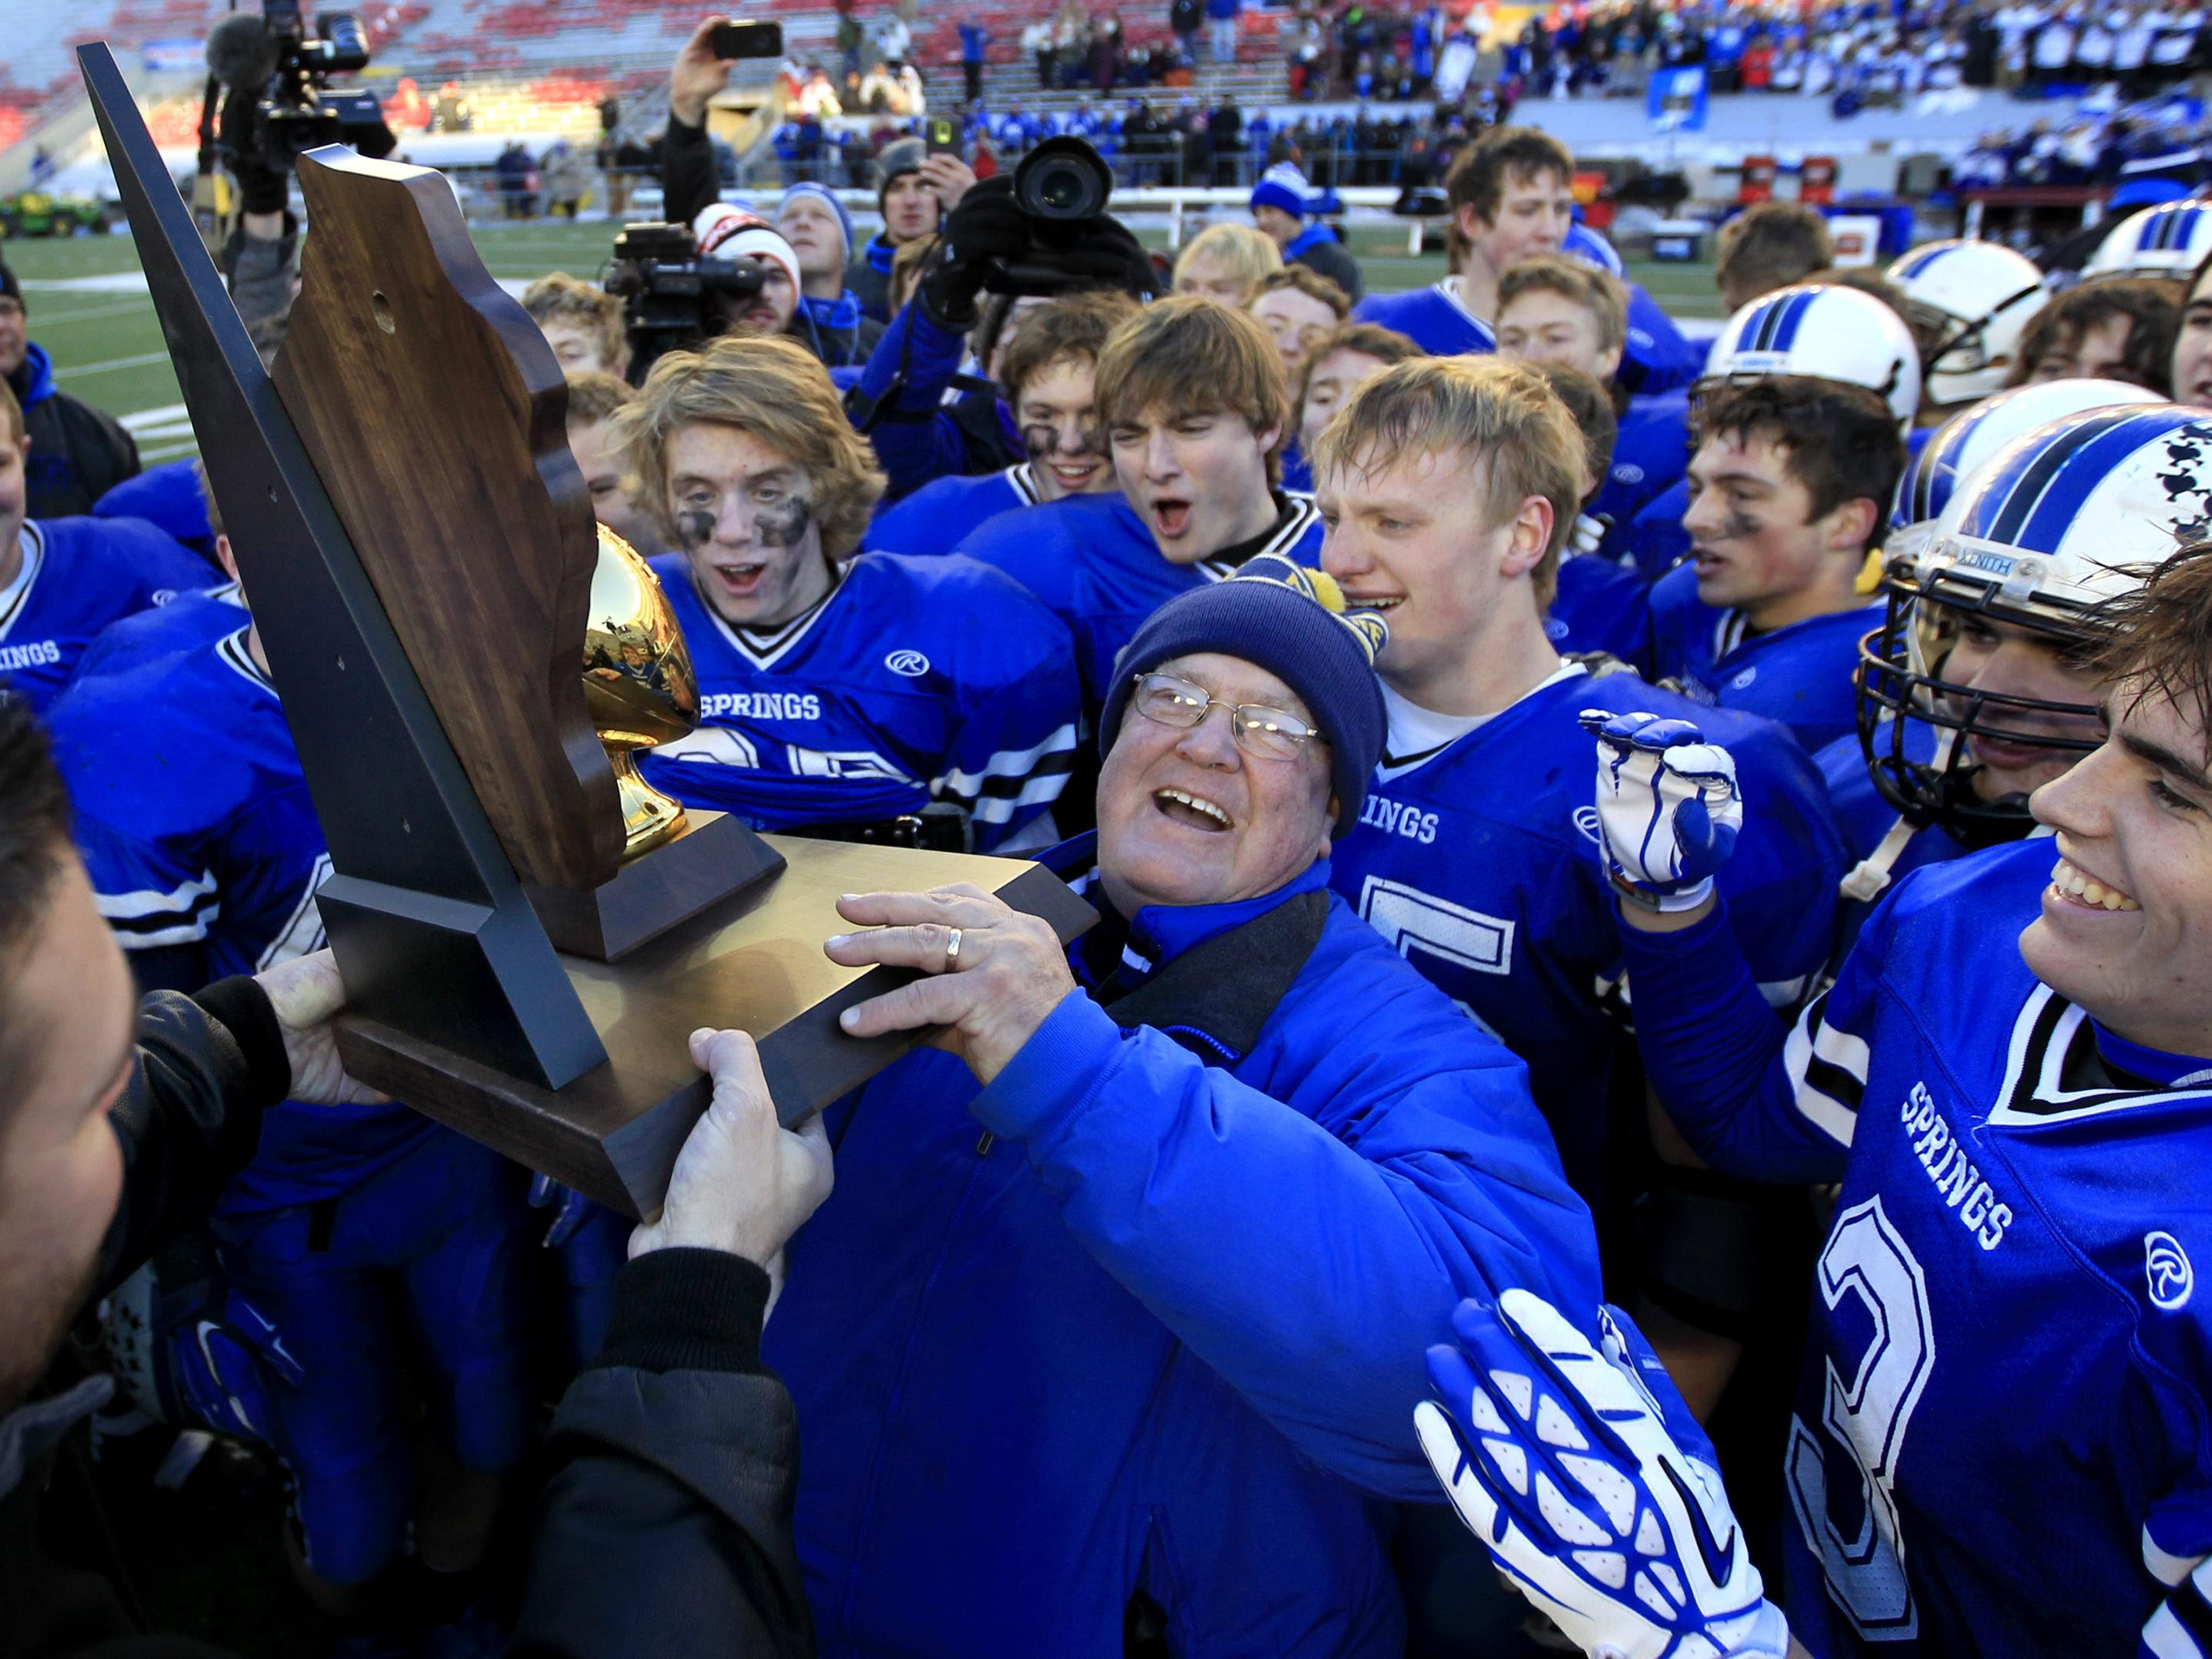 St. Mary's Springs head coach Bob Hyland accepts the championship trophy after the Ledgers' 37-21 victory over Darlington last year in Madison.